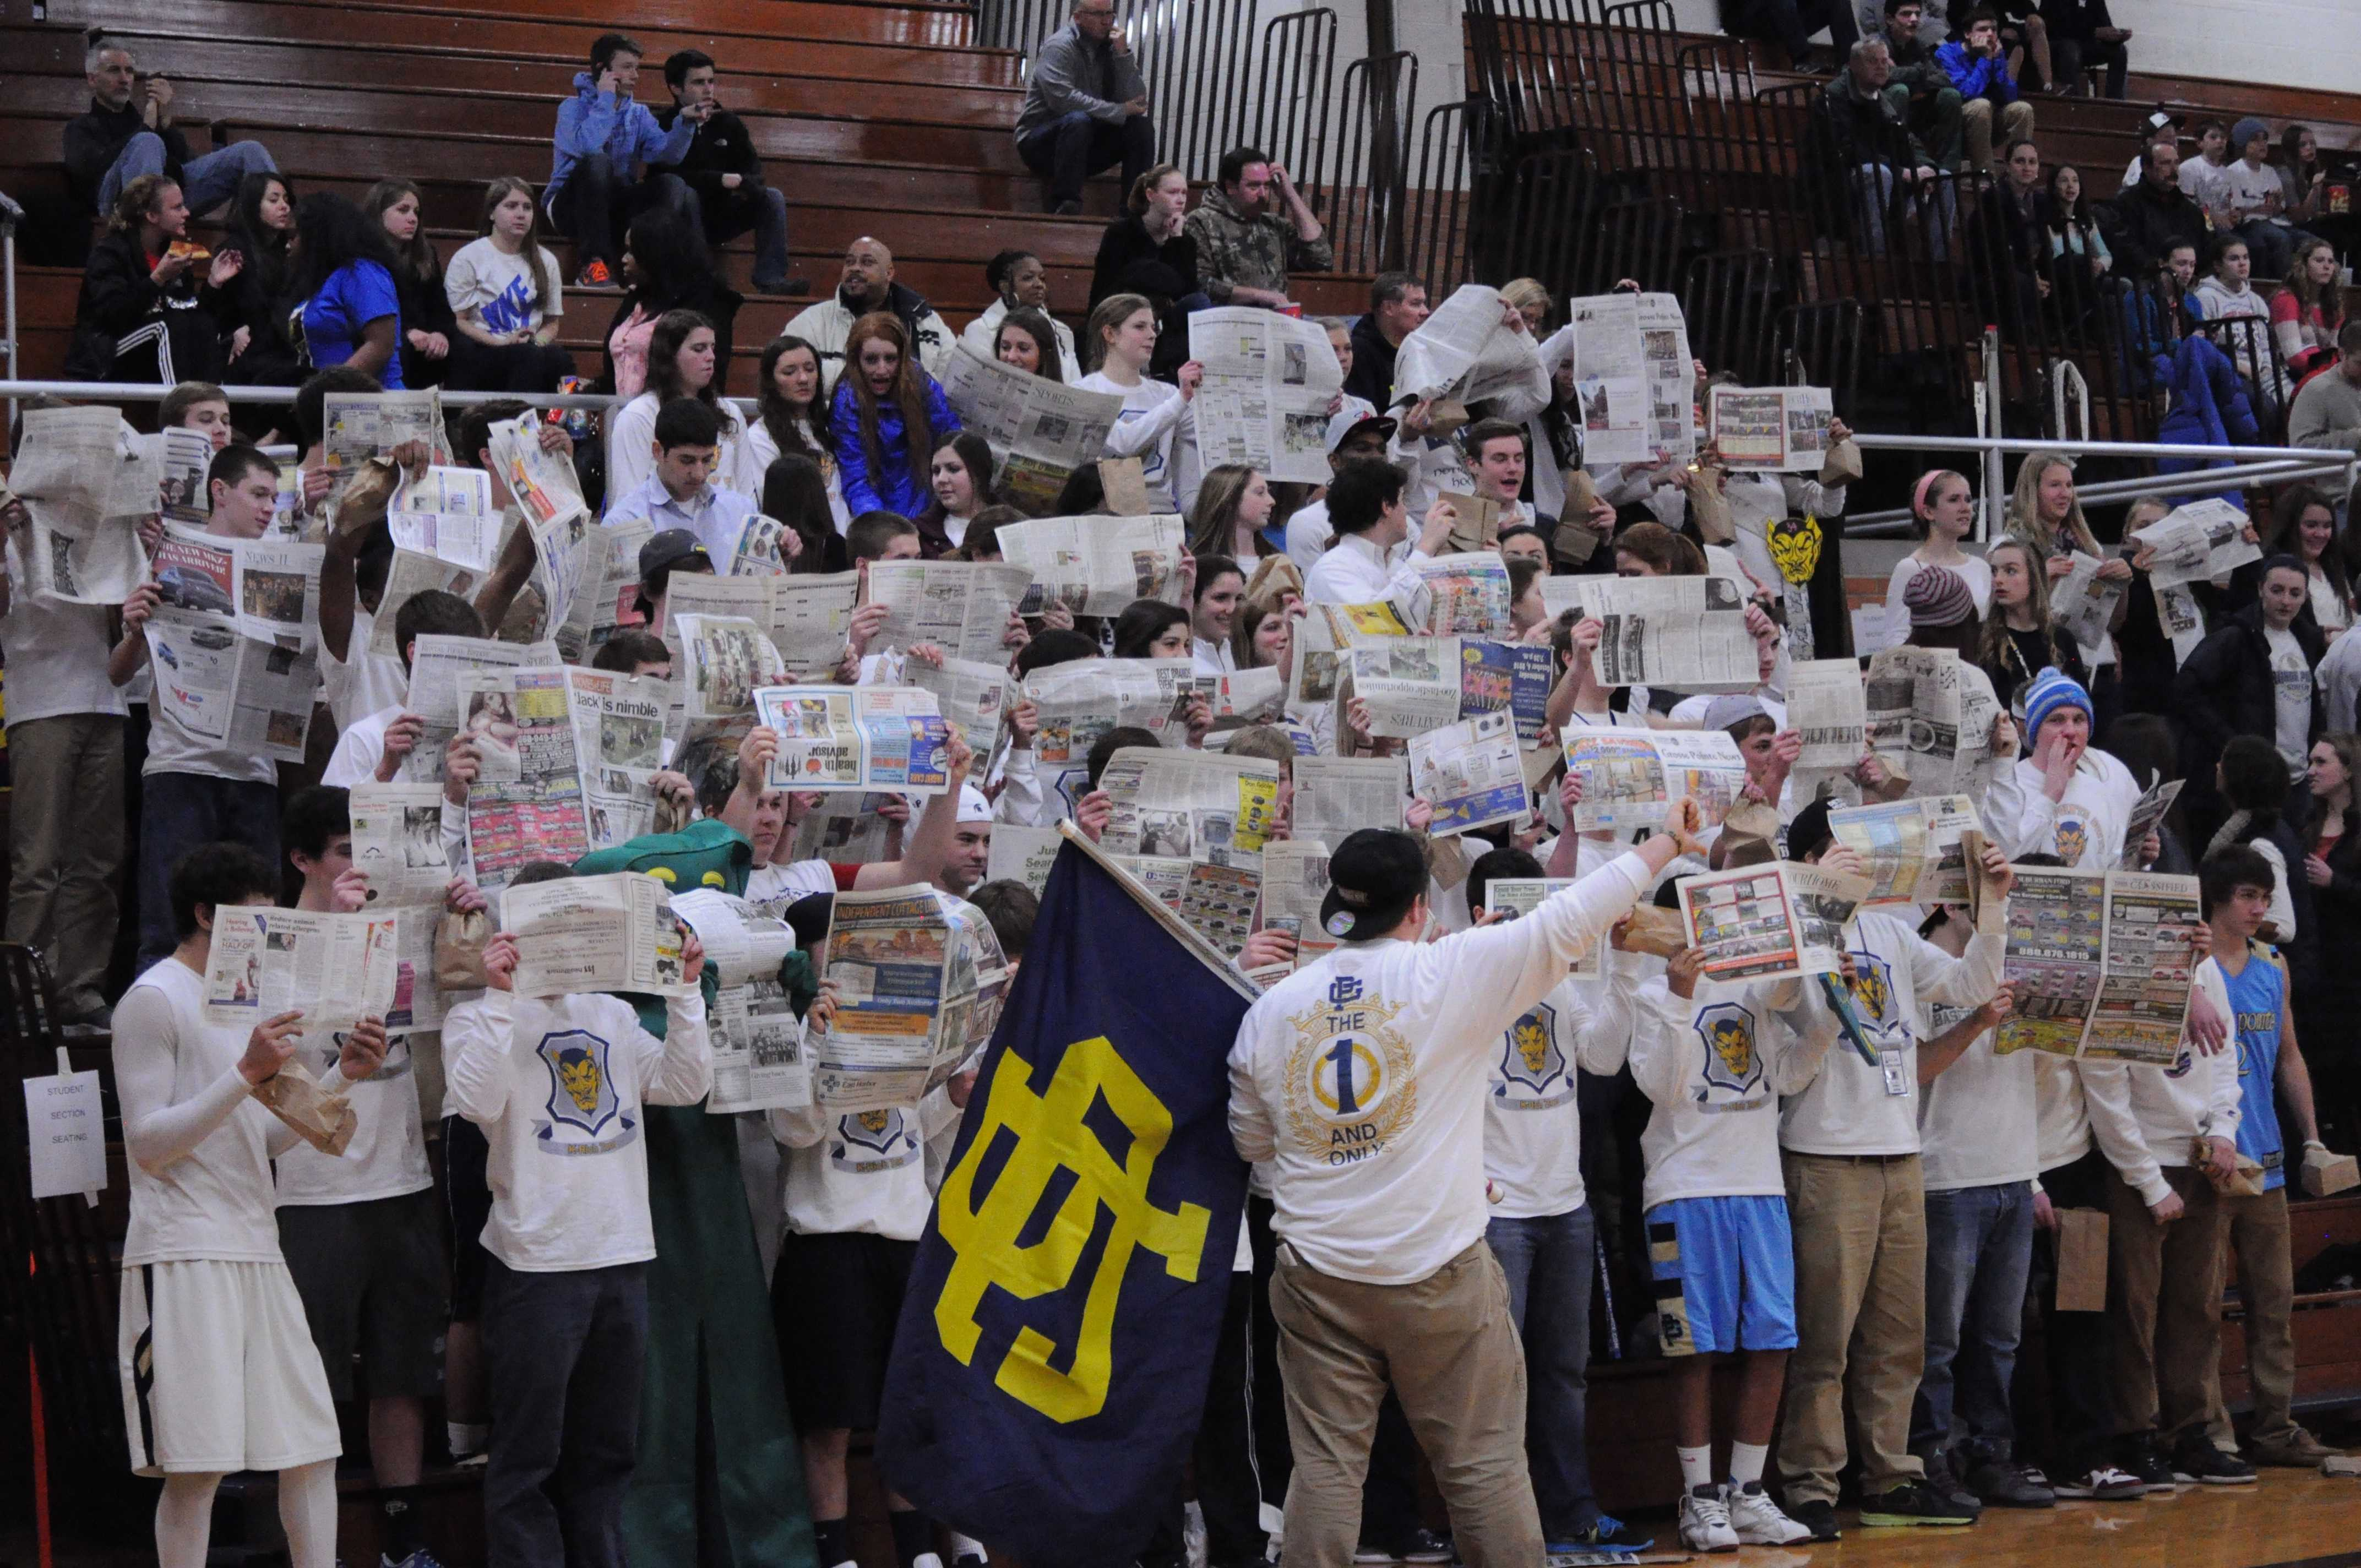 The student section couldn't get enough of The Tower